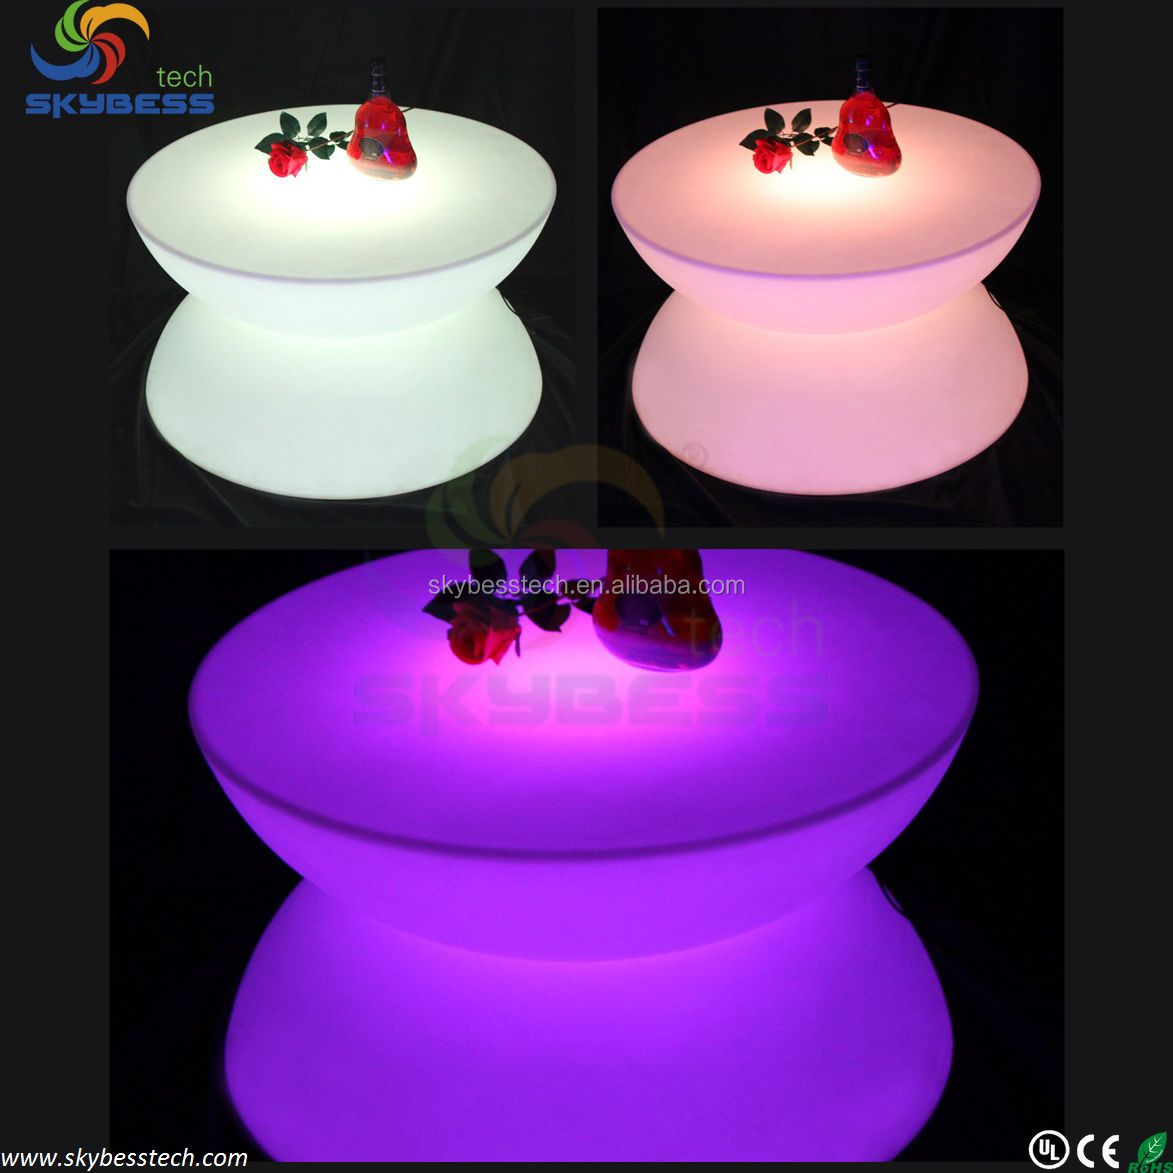 LED Table Lighting, Illuminated Bar Tables,RGB LED Bar Table SK-LF16 (D80*H44cm) free shipping 1pc<br><br>Aliexpress